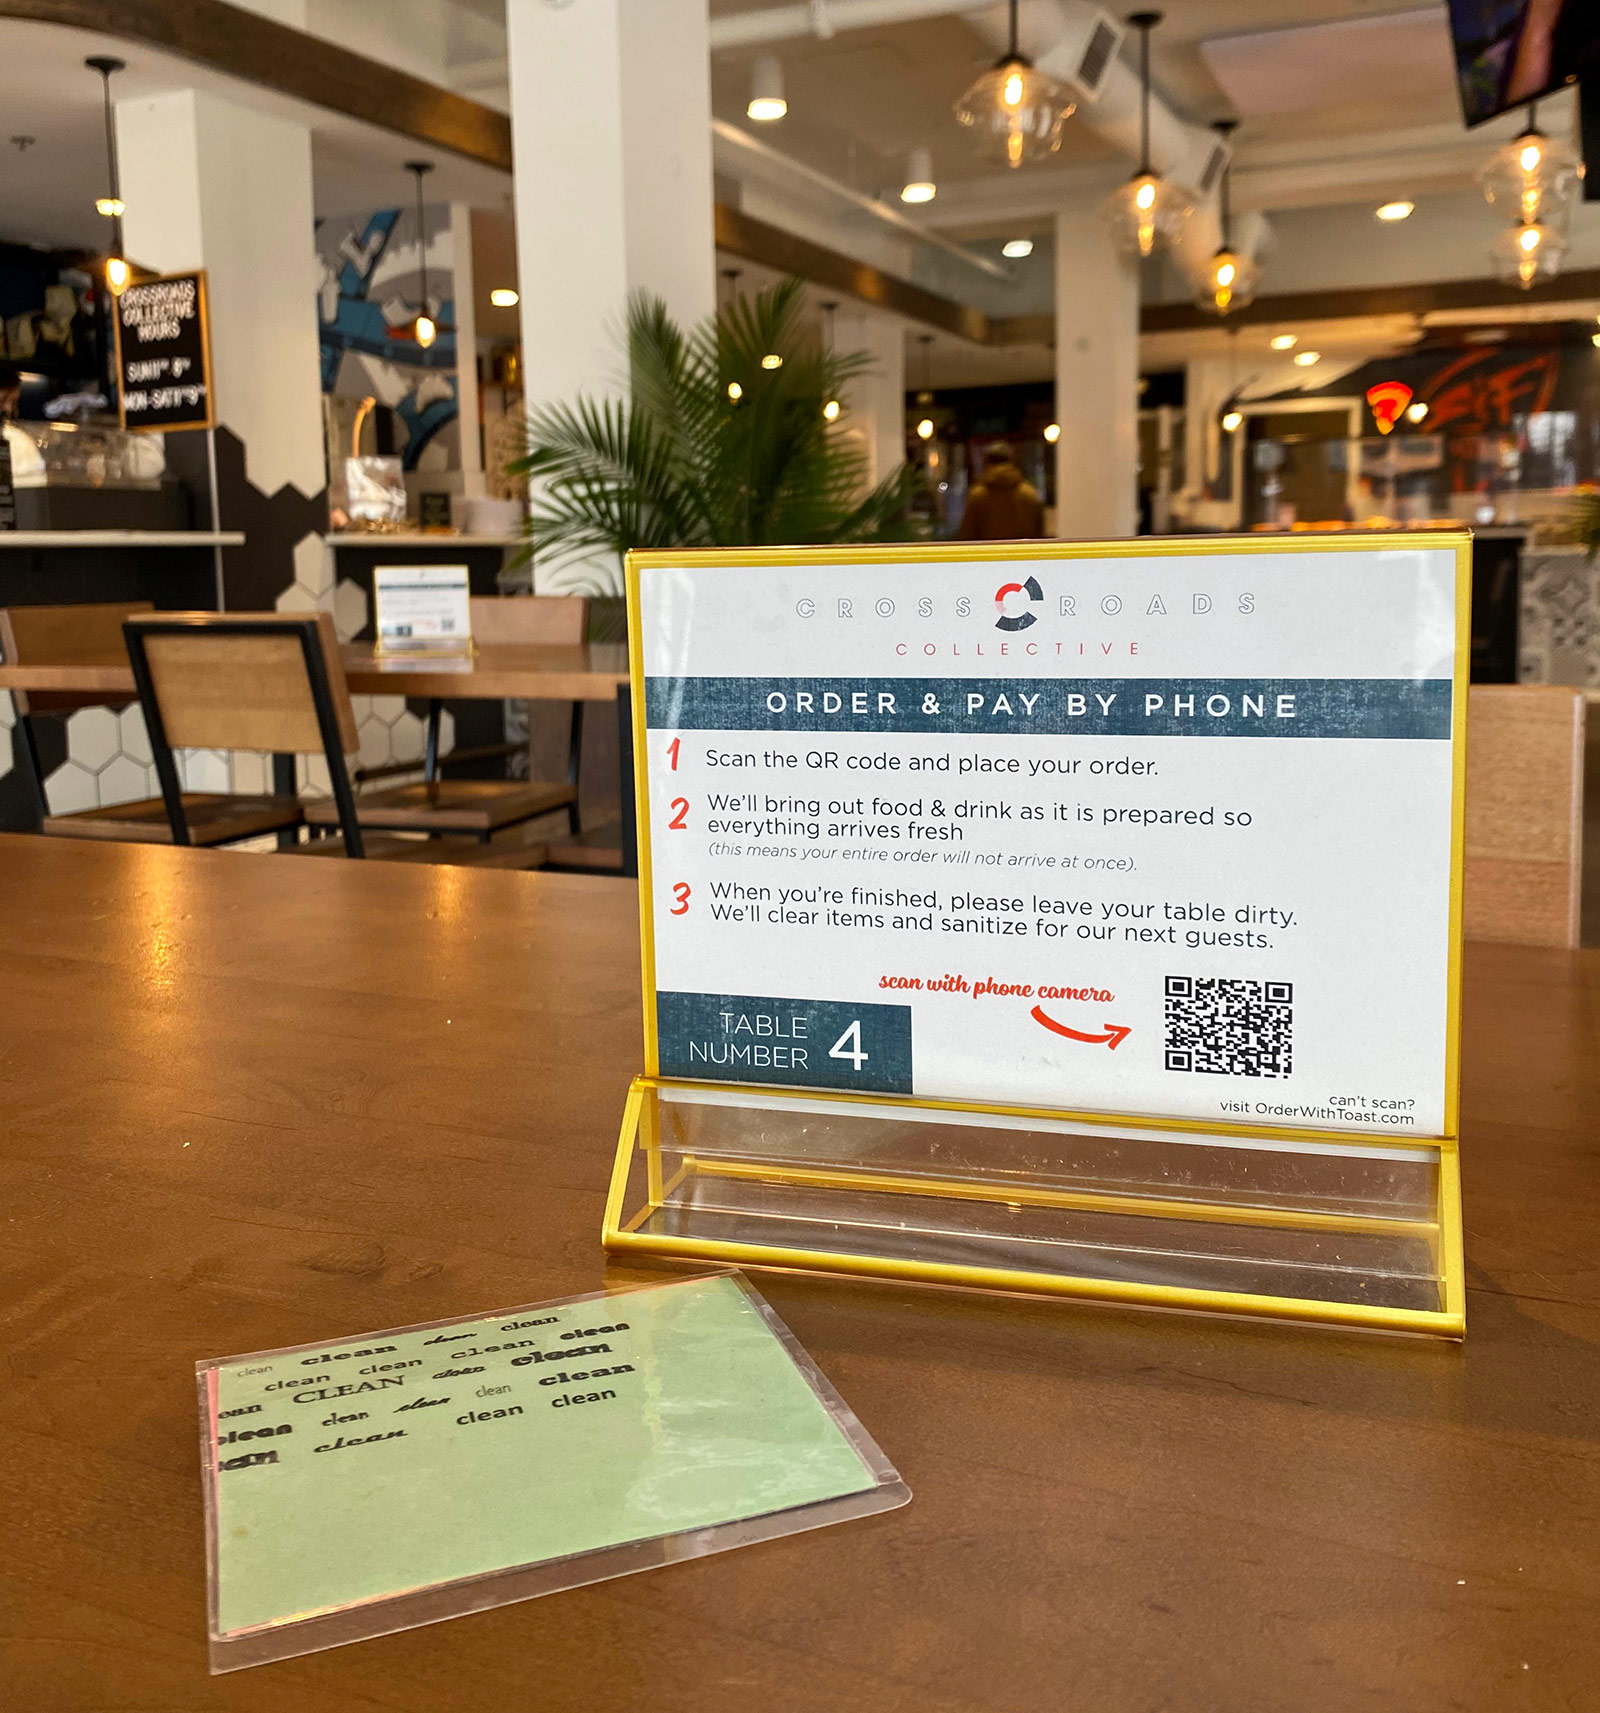 A standee at the Crossroads Collective explains steps to stay safe while eating in public during a pandemic.